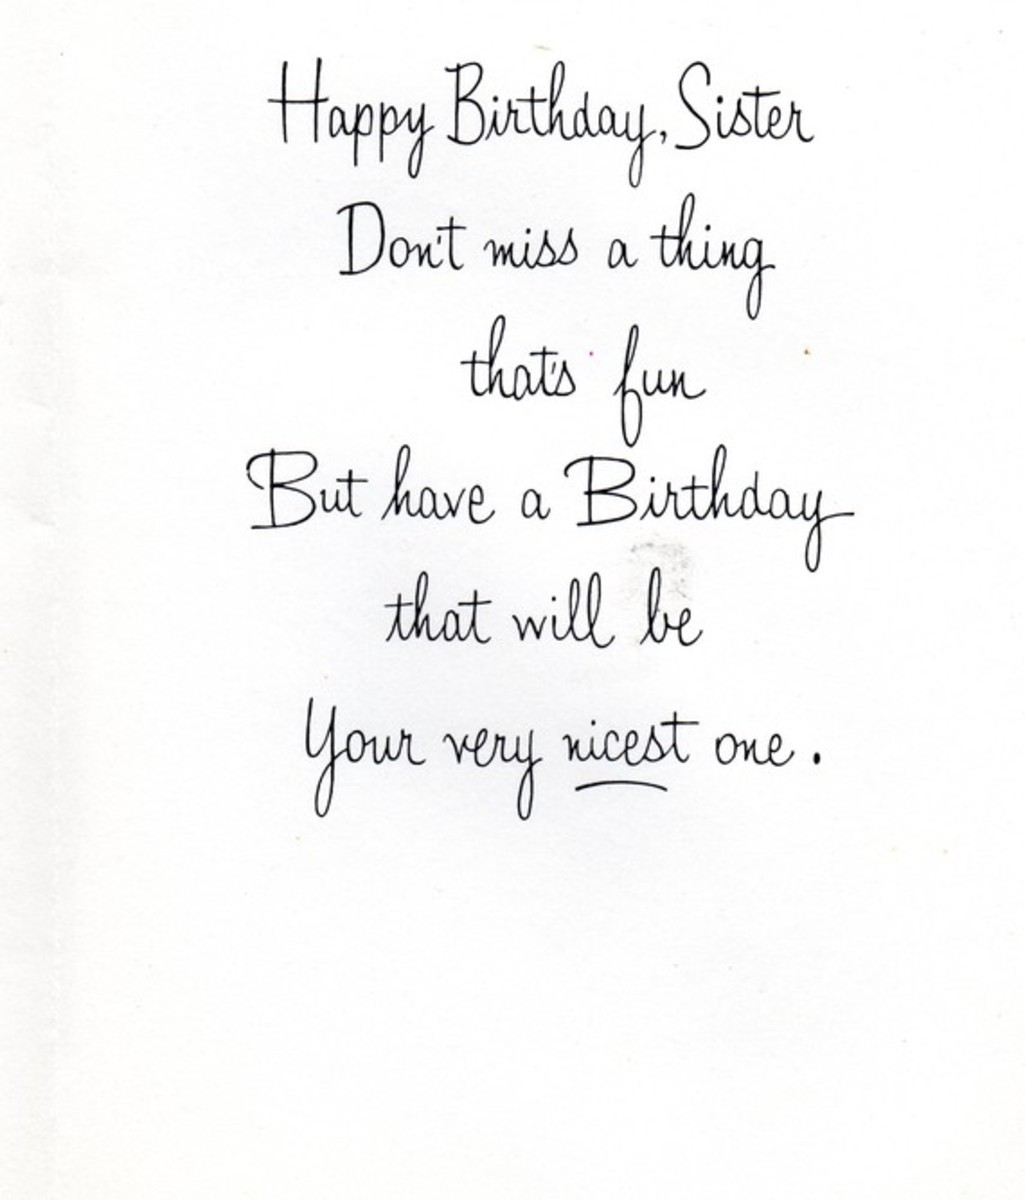 Happy Birthday To A Special Sister Quotes: Happy Birthday Wishes And Quotes For Your Sister